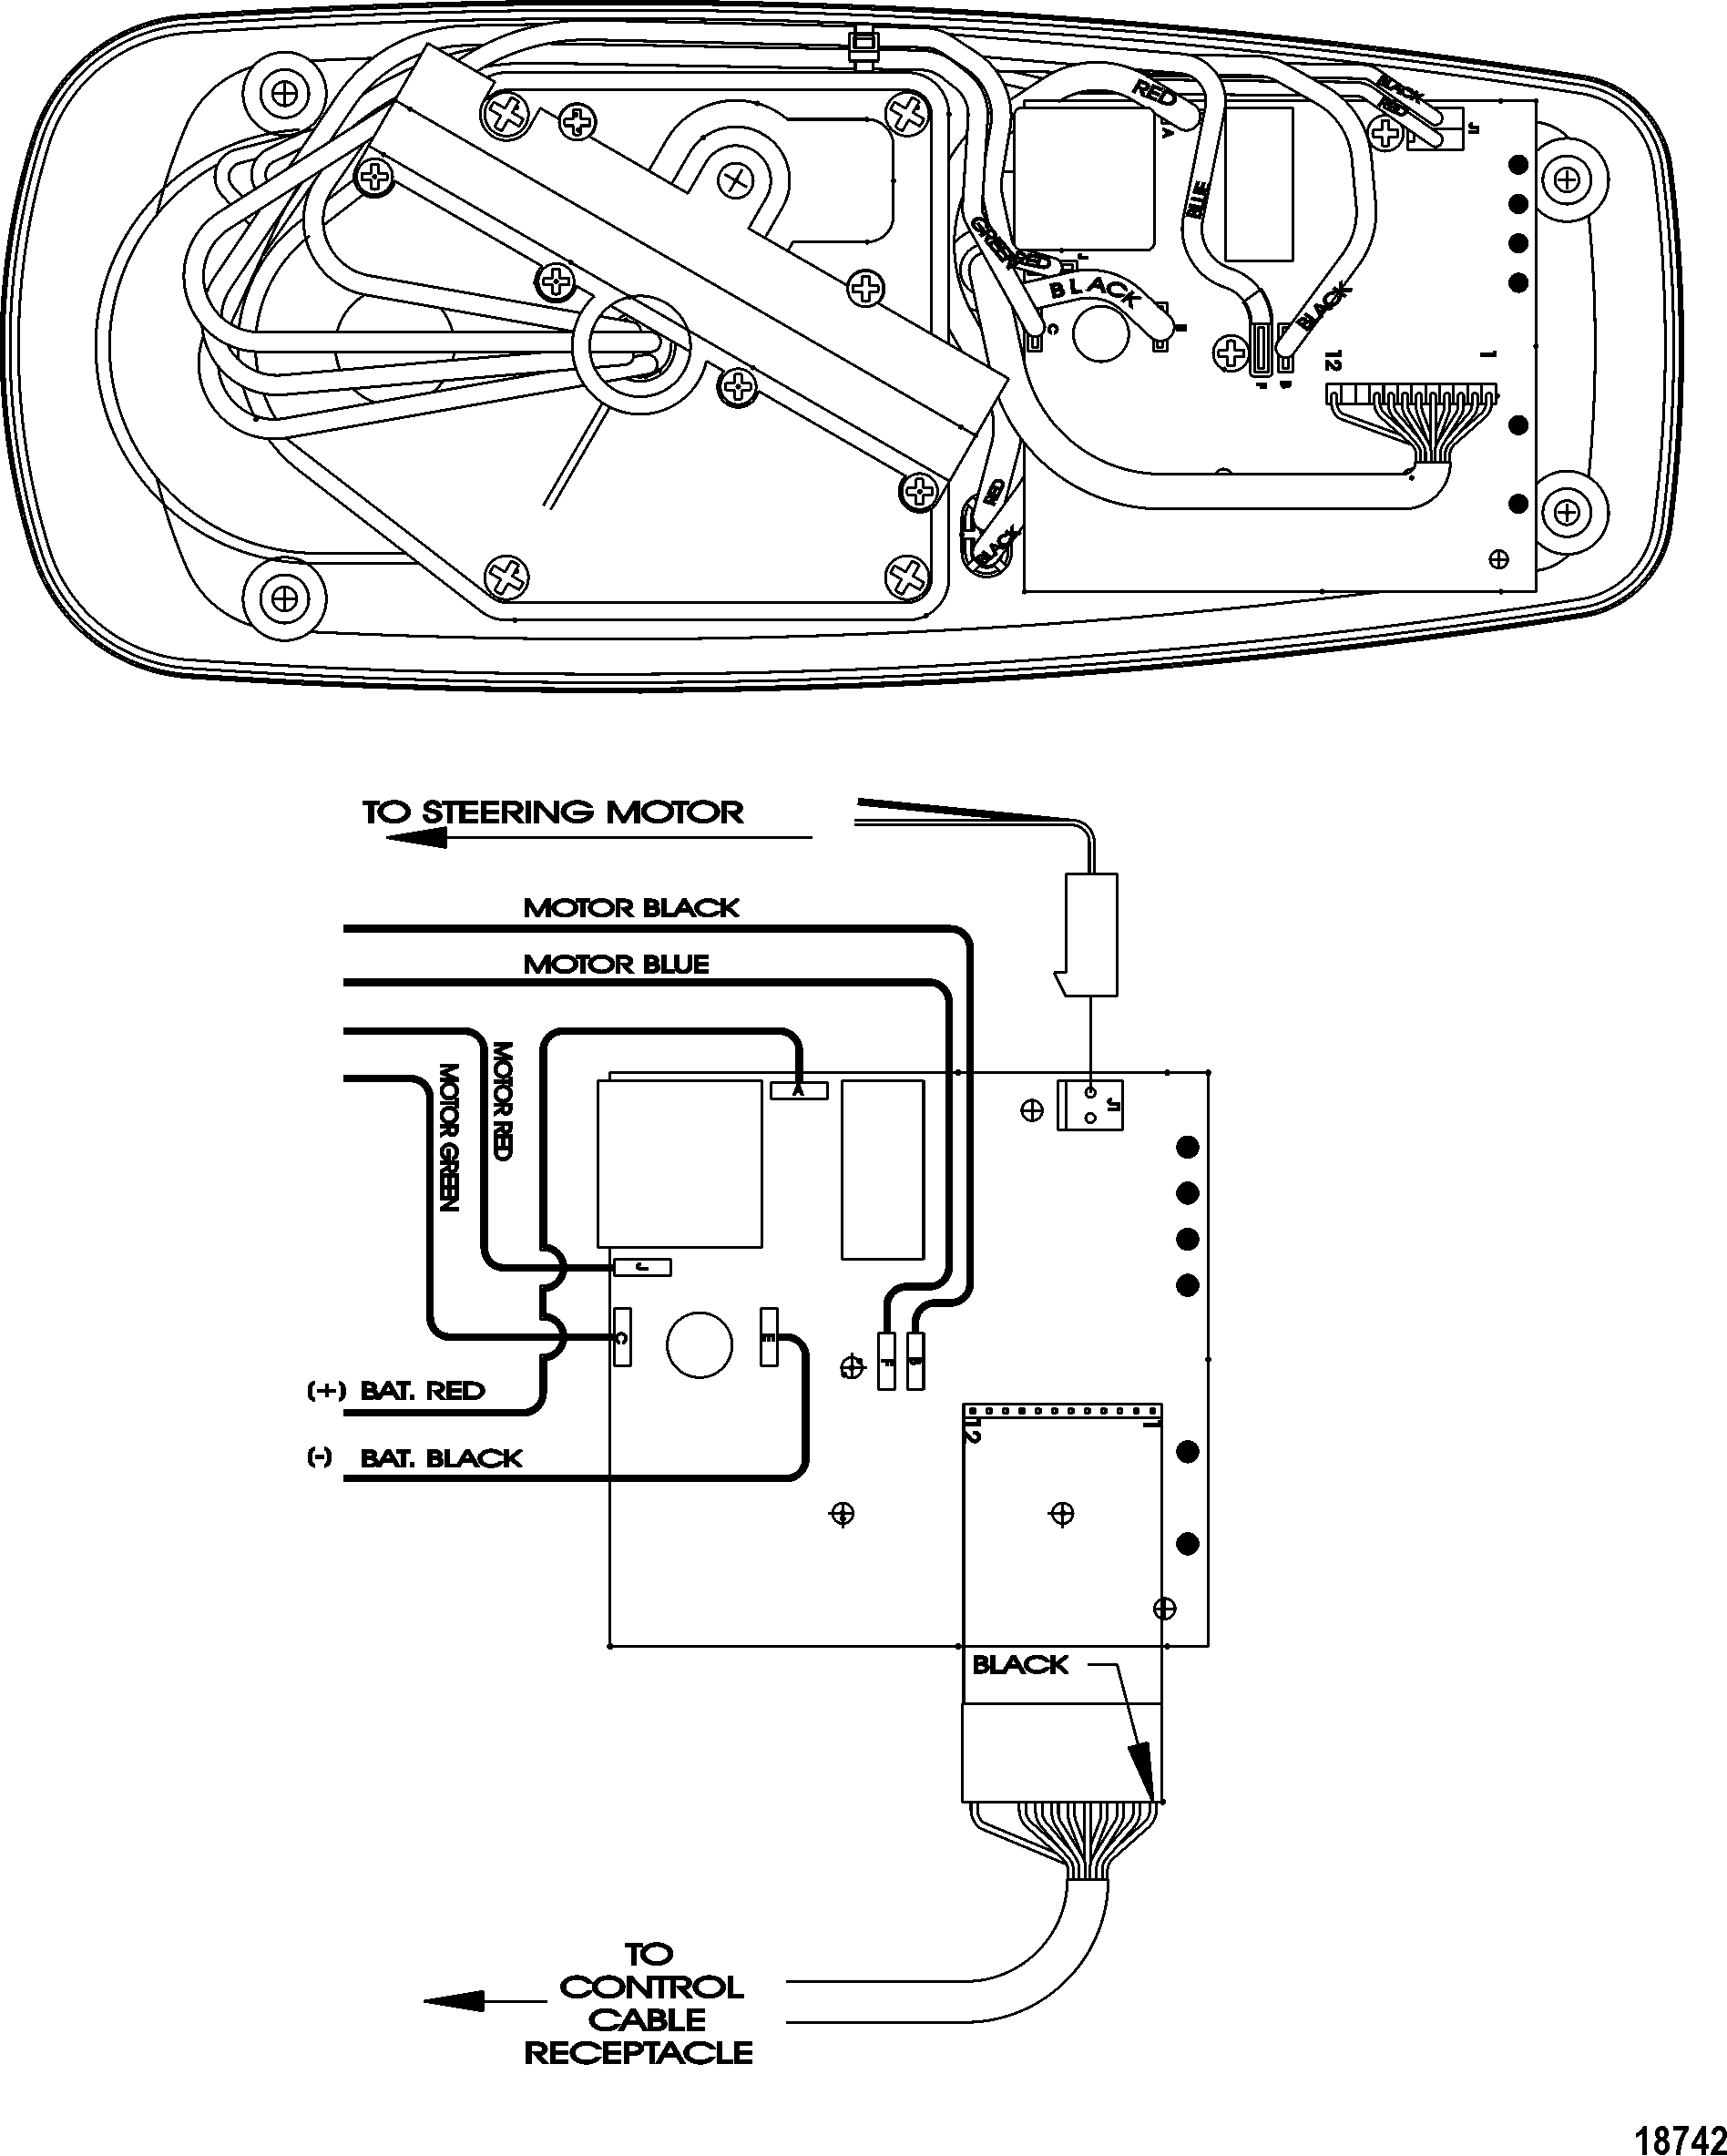 hight resolution of  wiring diagram motorguide trolling motor on 12 volt boat wiring diagram parts of the foot